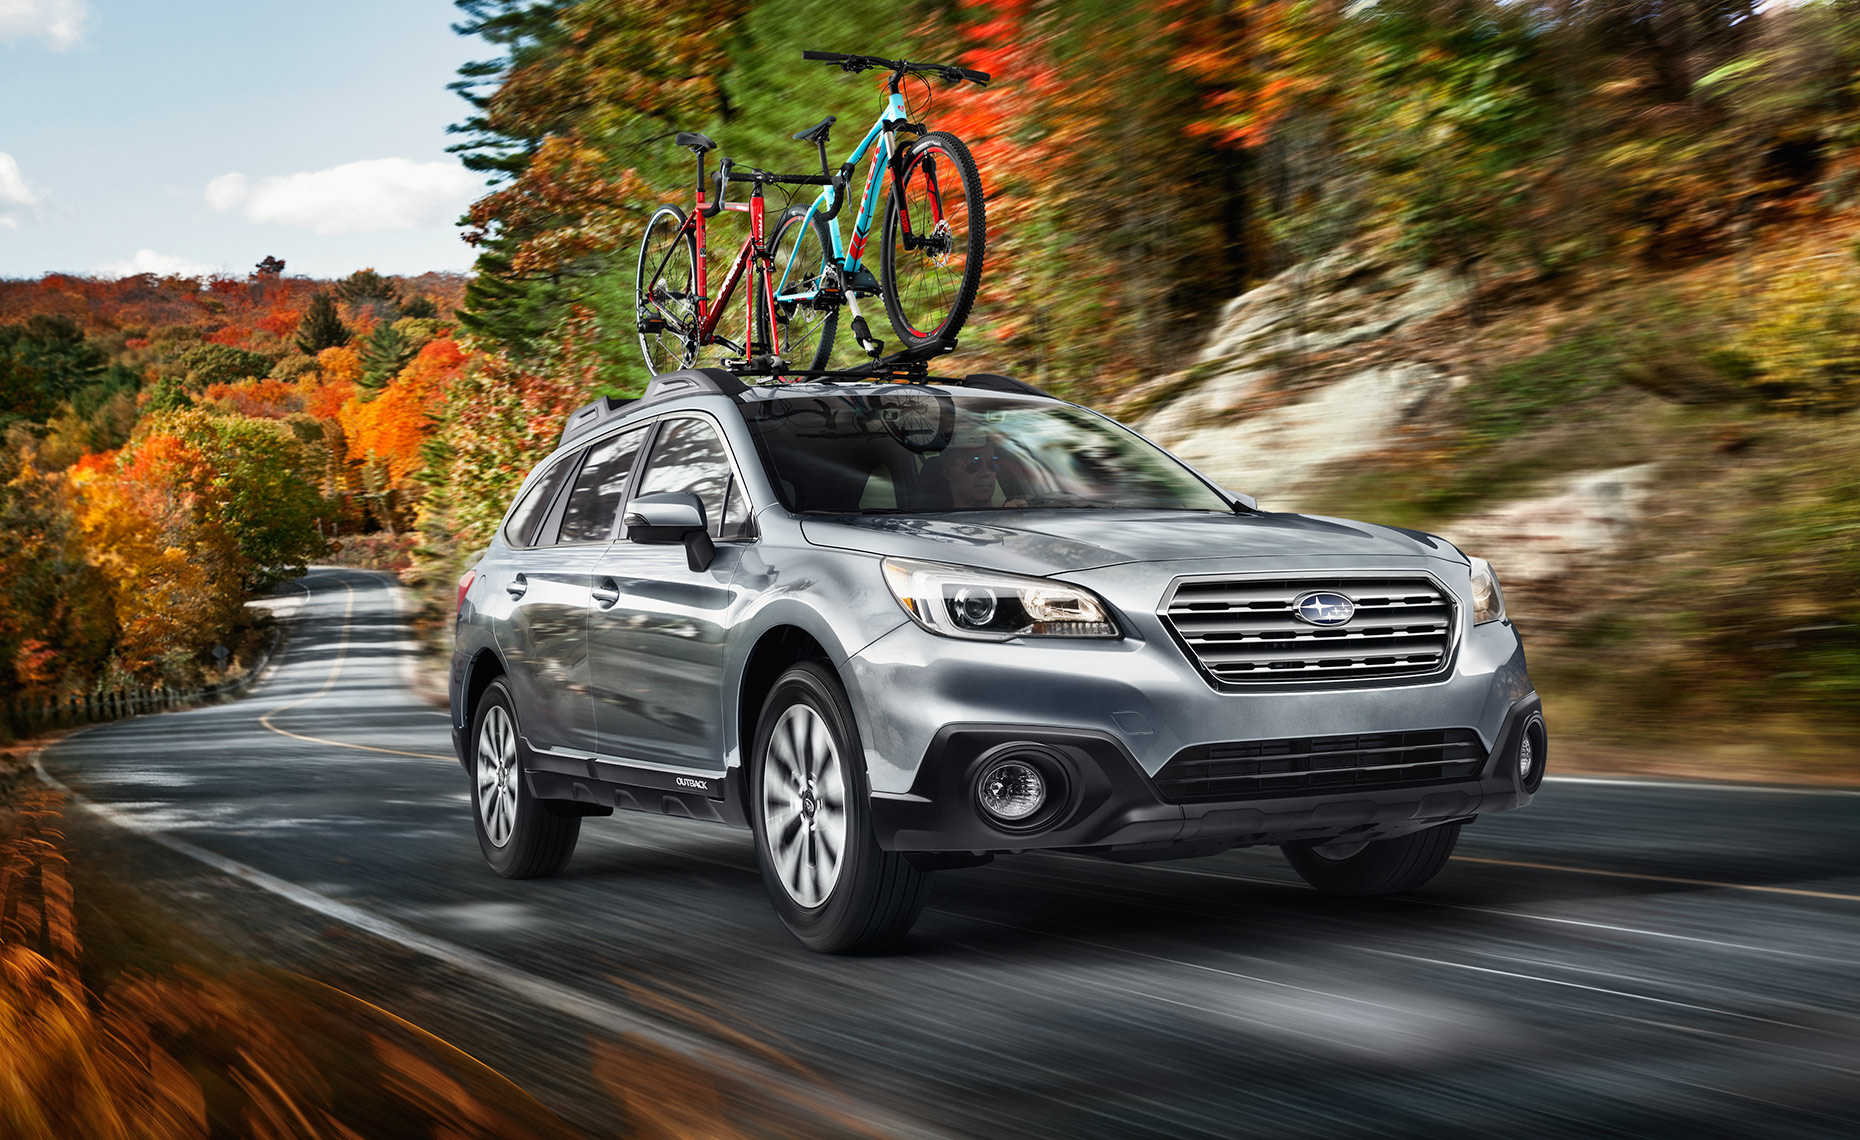 Subaru-Outback-Fall-Lake-Road